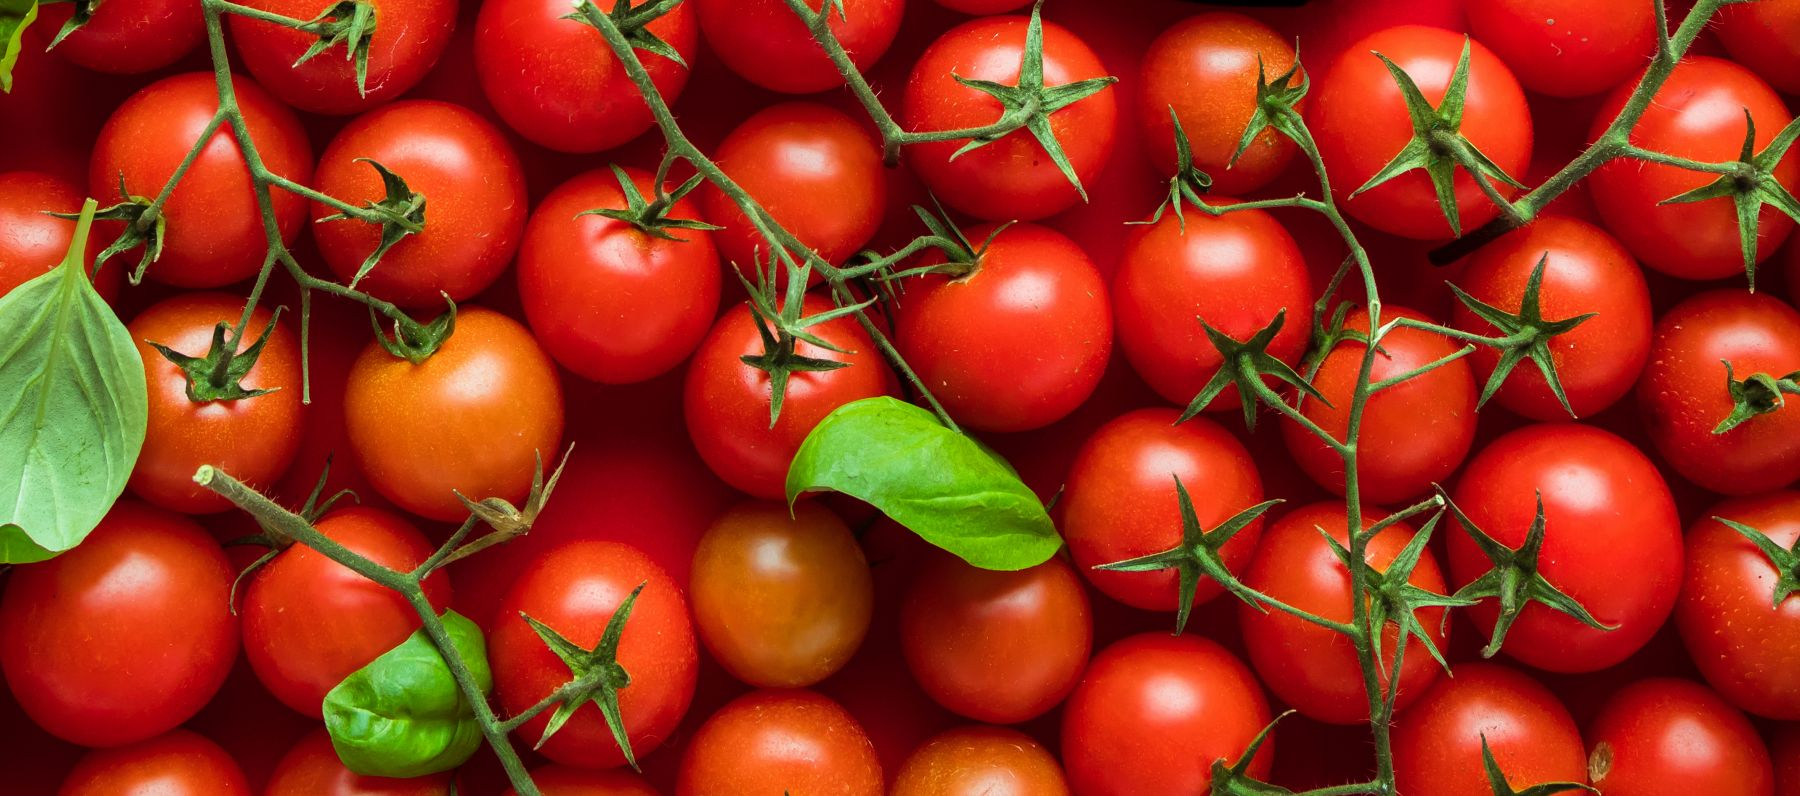 ThinkPlace designer Eliot Duffy says tomatoes might tell a story about the meaning of innovation